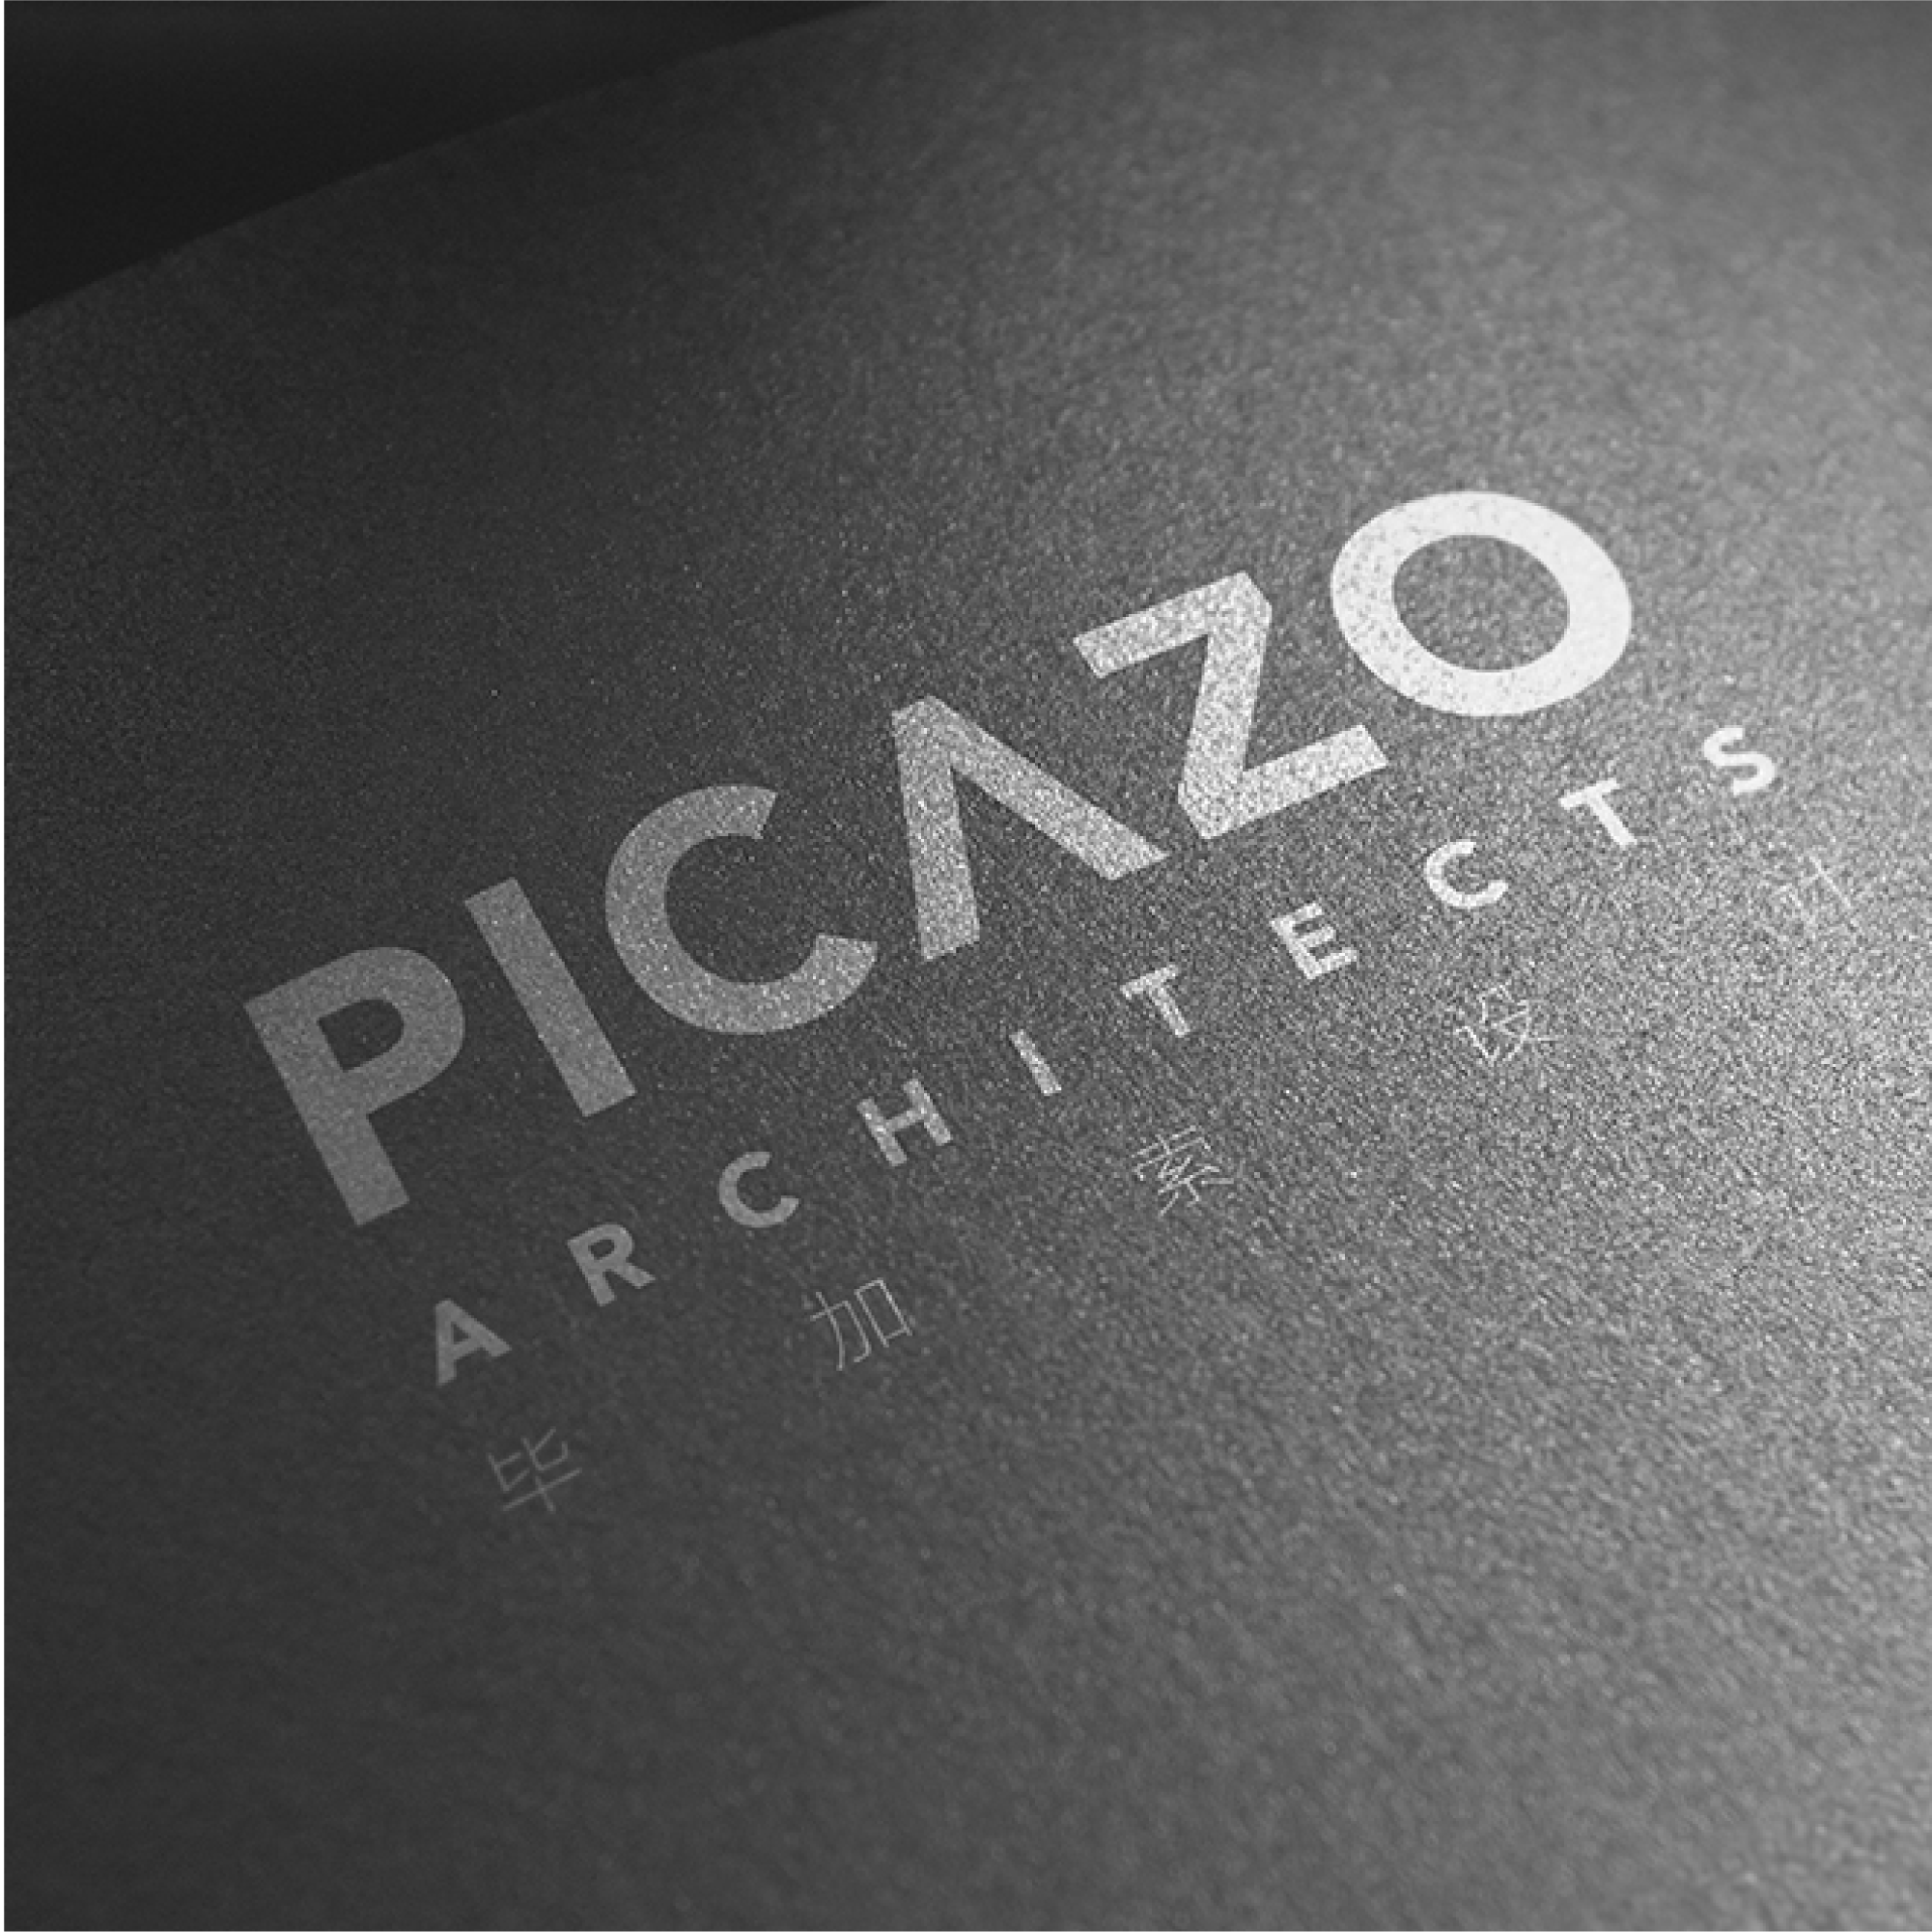 PICAZO ARCHITECTS